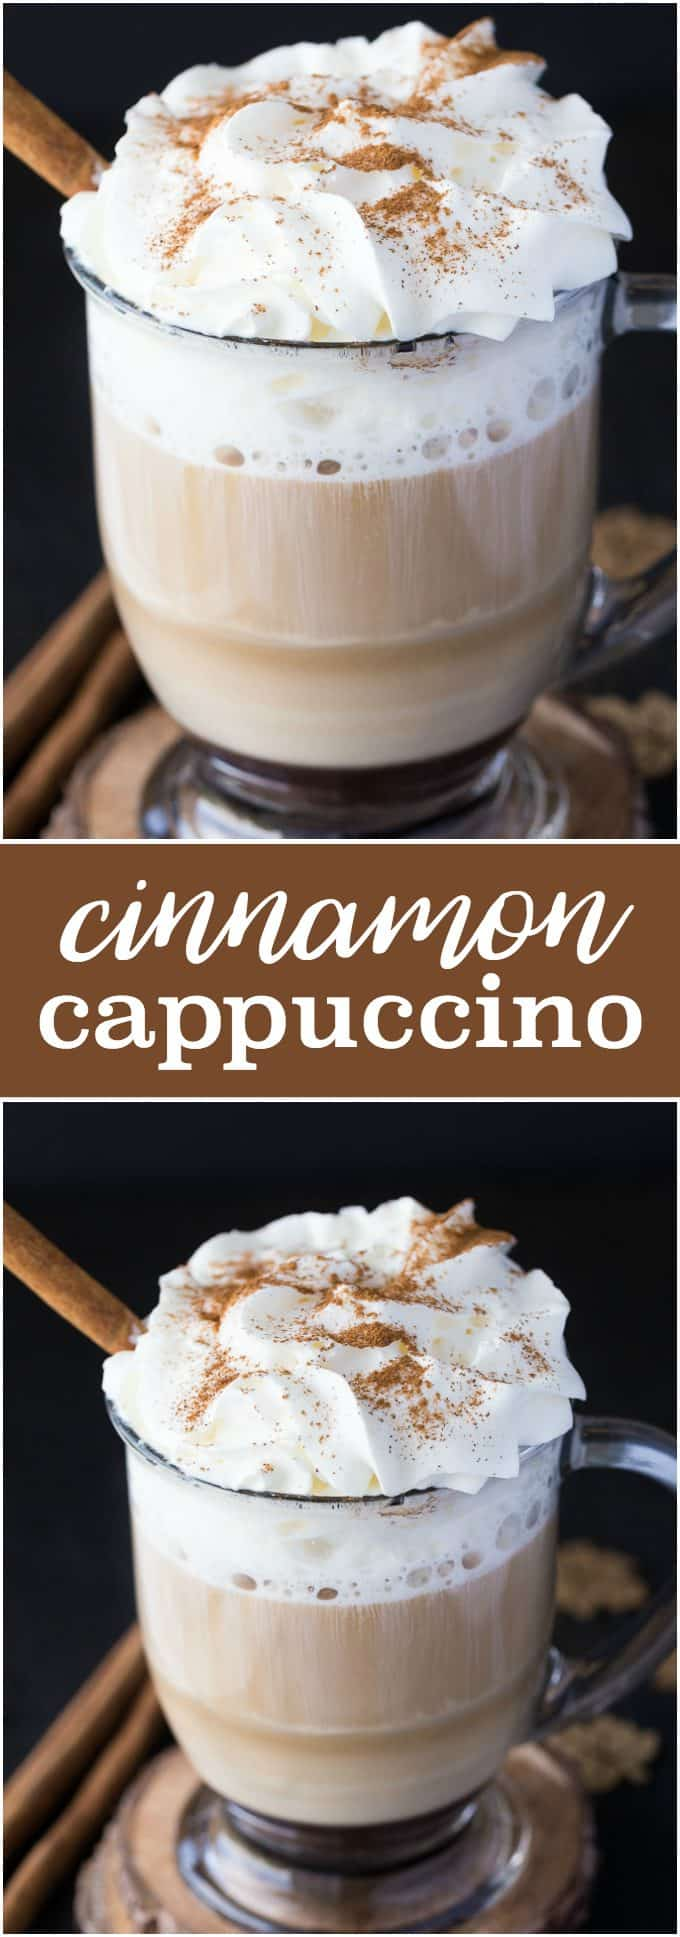 Cinnamon Cappuccino - Topped with whipped cream, the warm cinnamon and coffee flavours will warm you from the inside out.